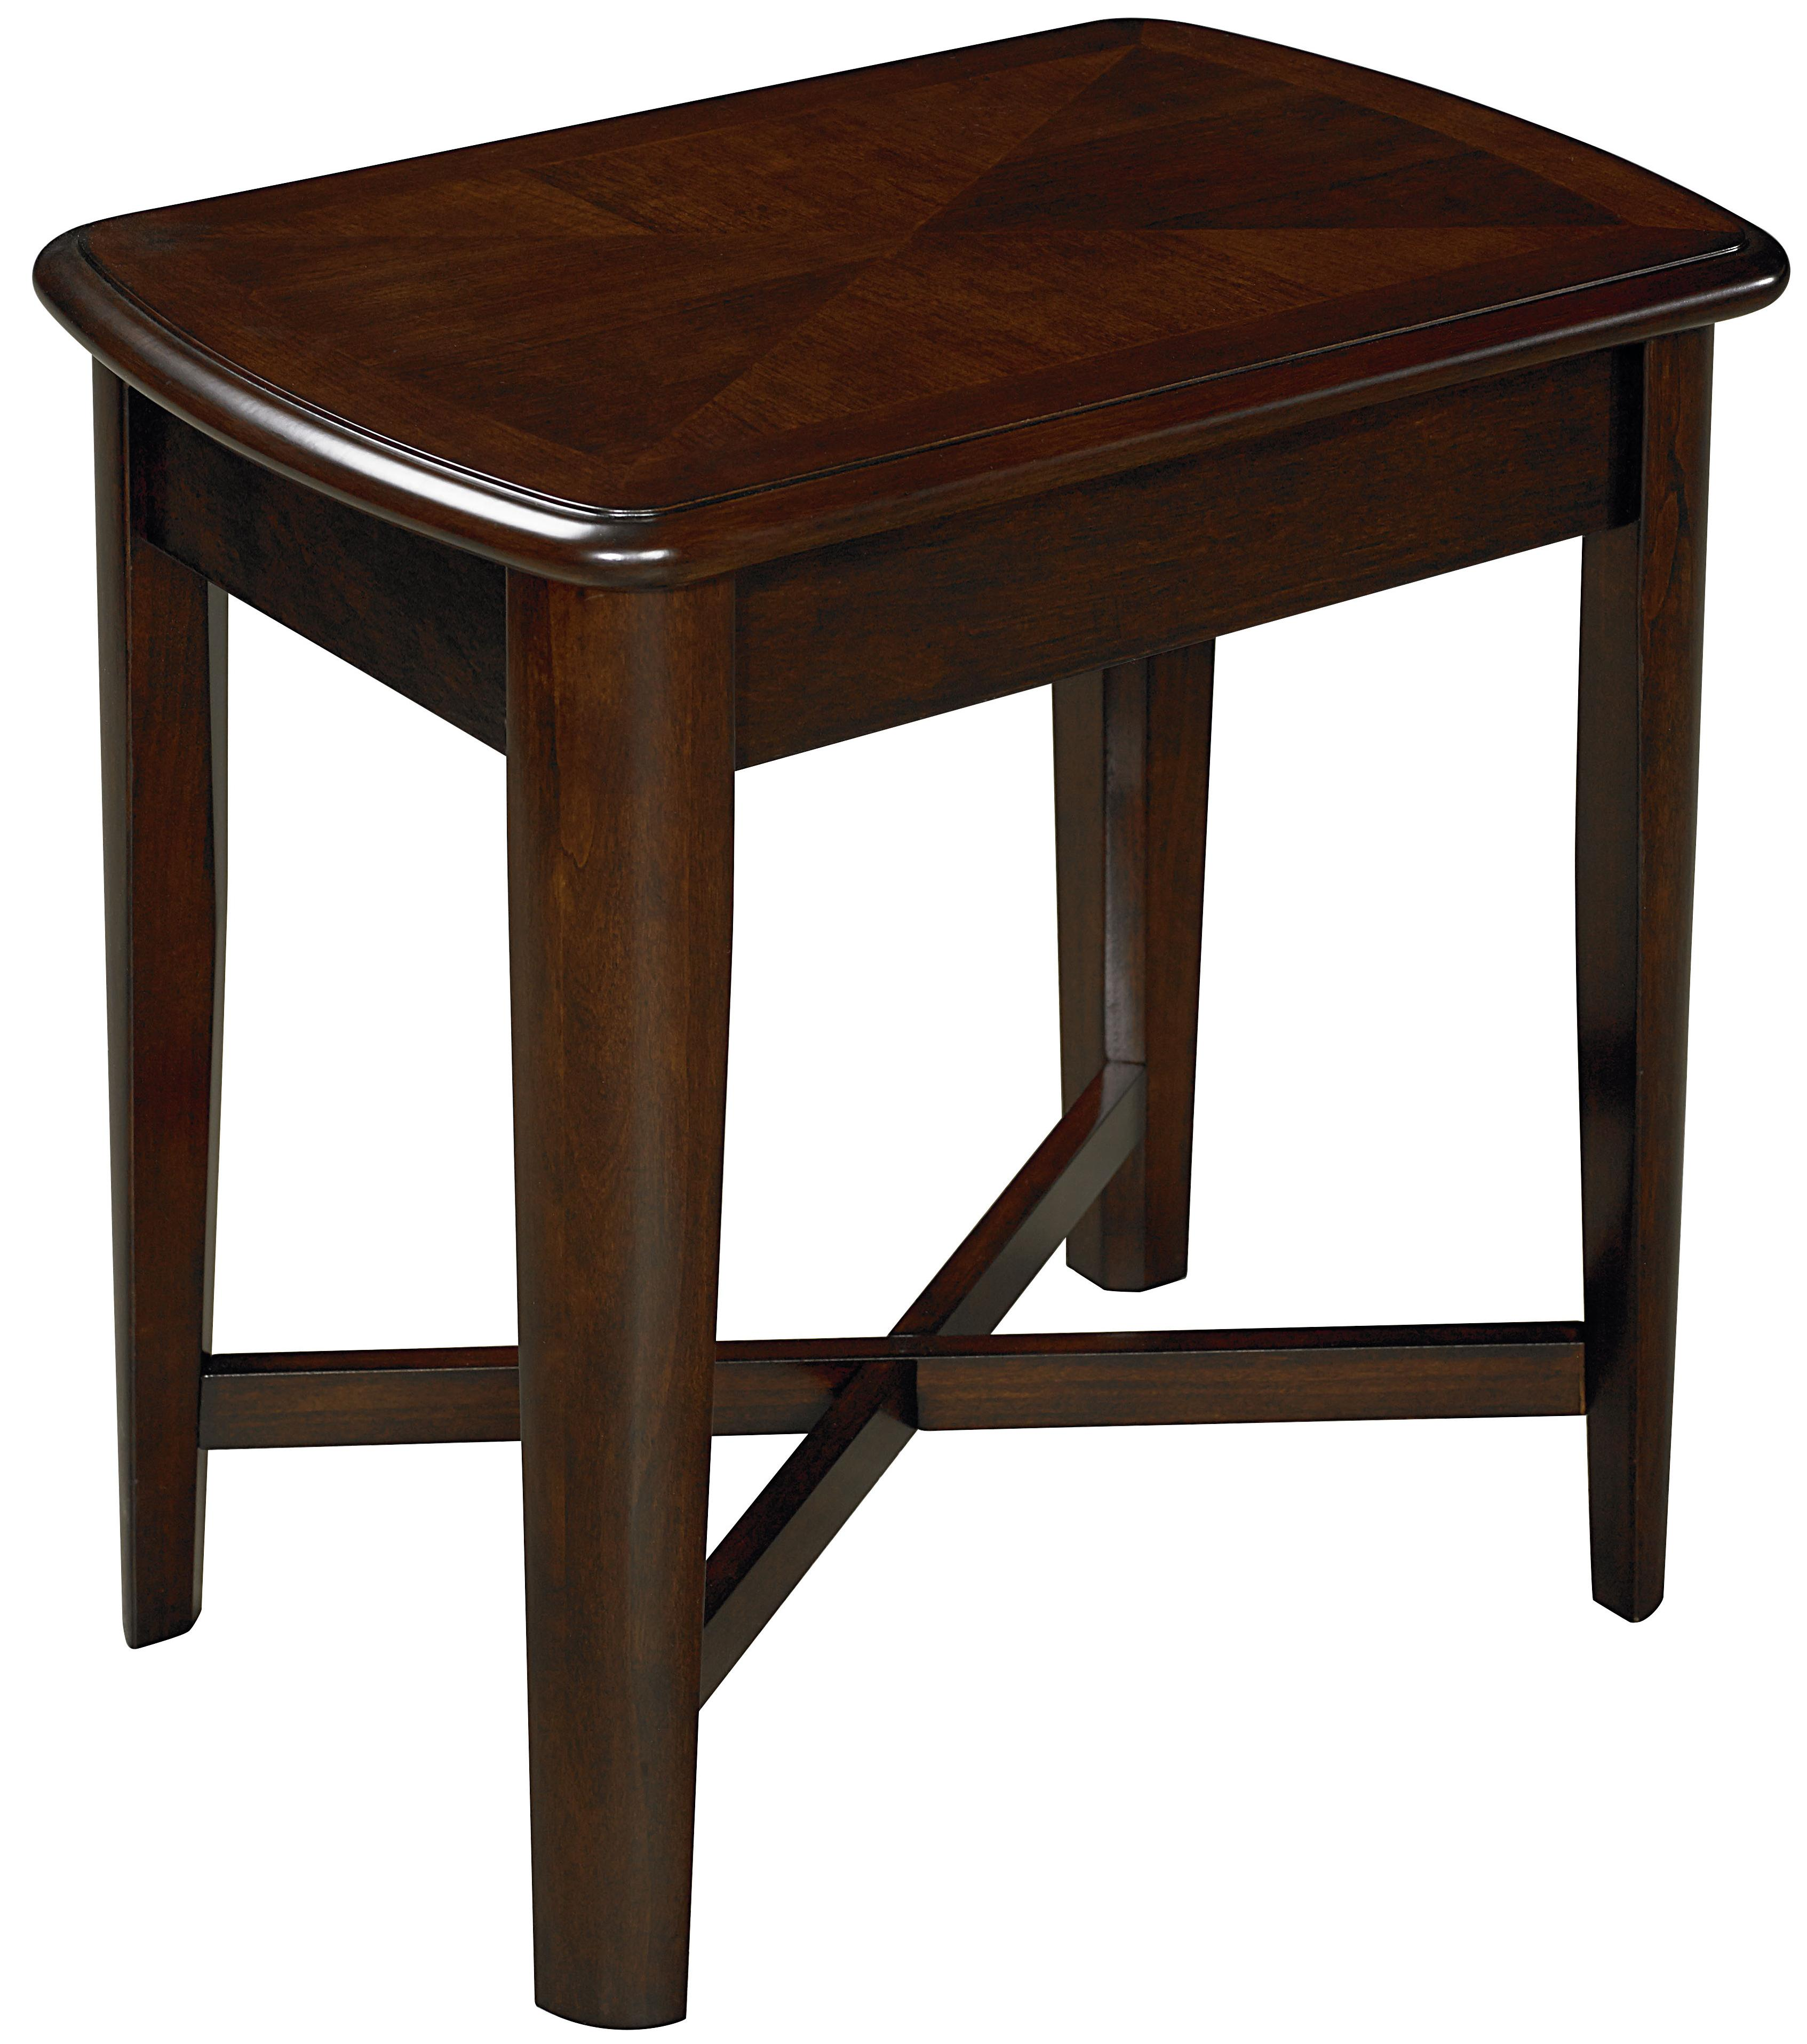 3 Piece Occasional Table Set With Cocktail Table And End Tables By Standard Furniture Wolf And